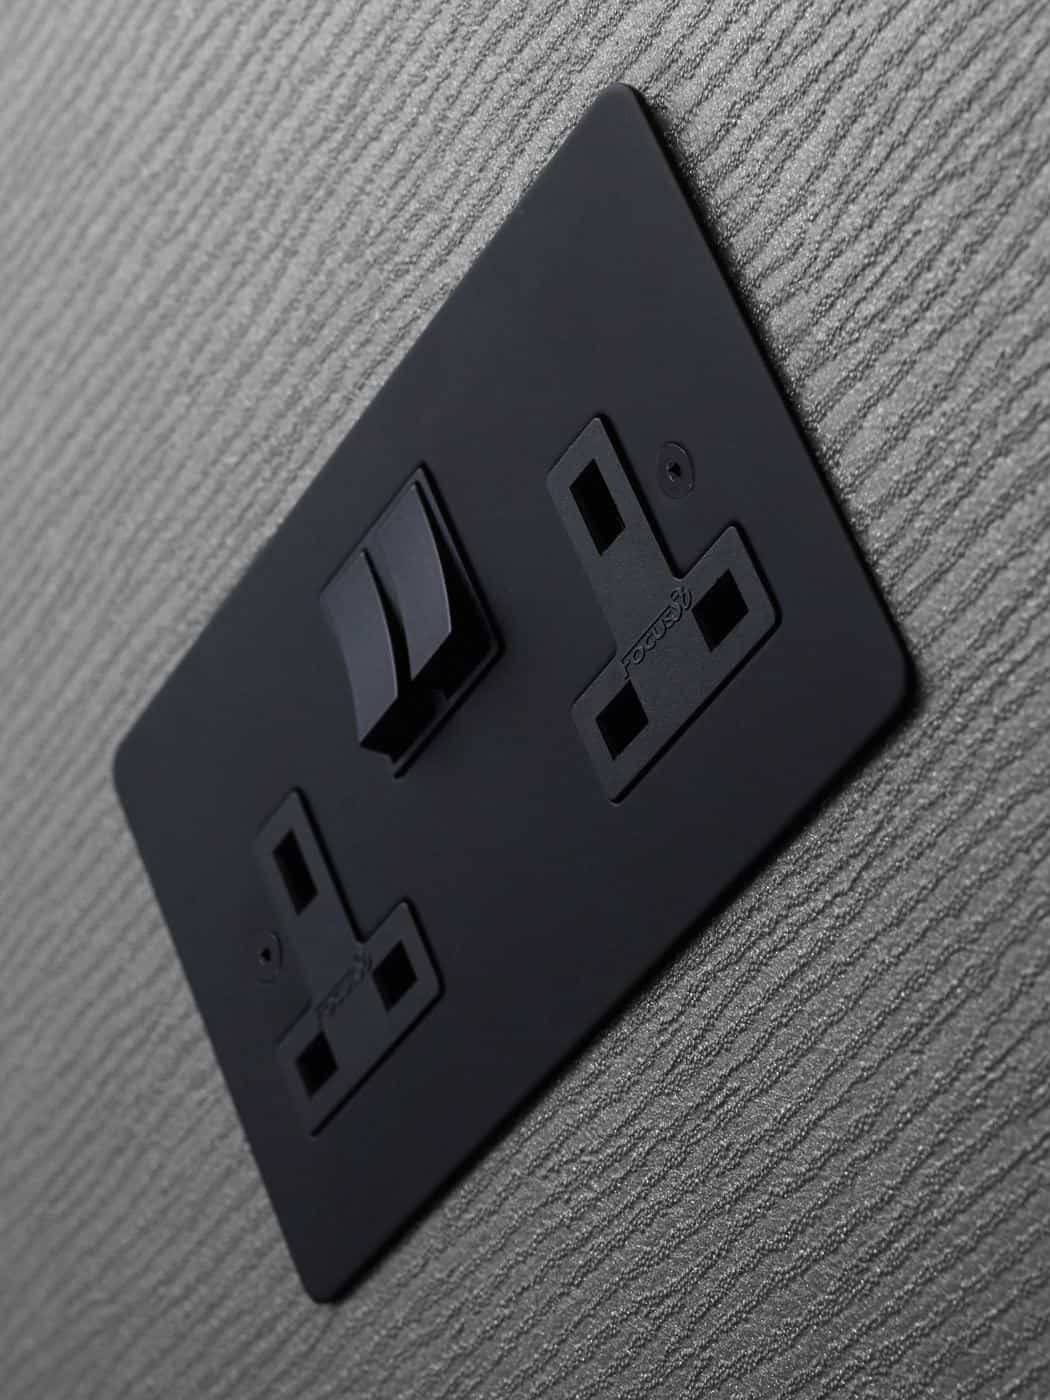 Designer Electrical Wiring Accessories from Focus SB - power socket in matt black